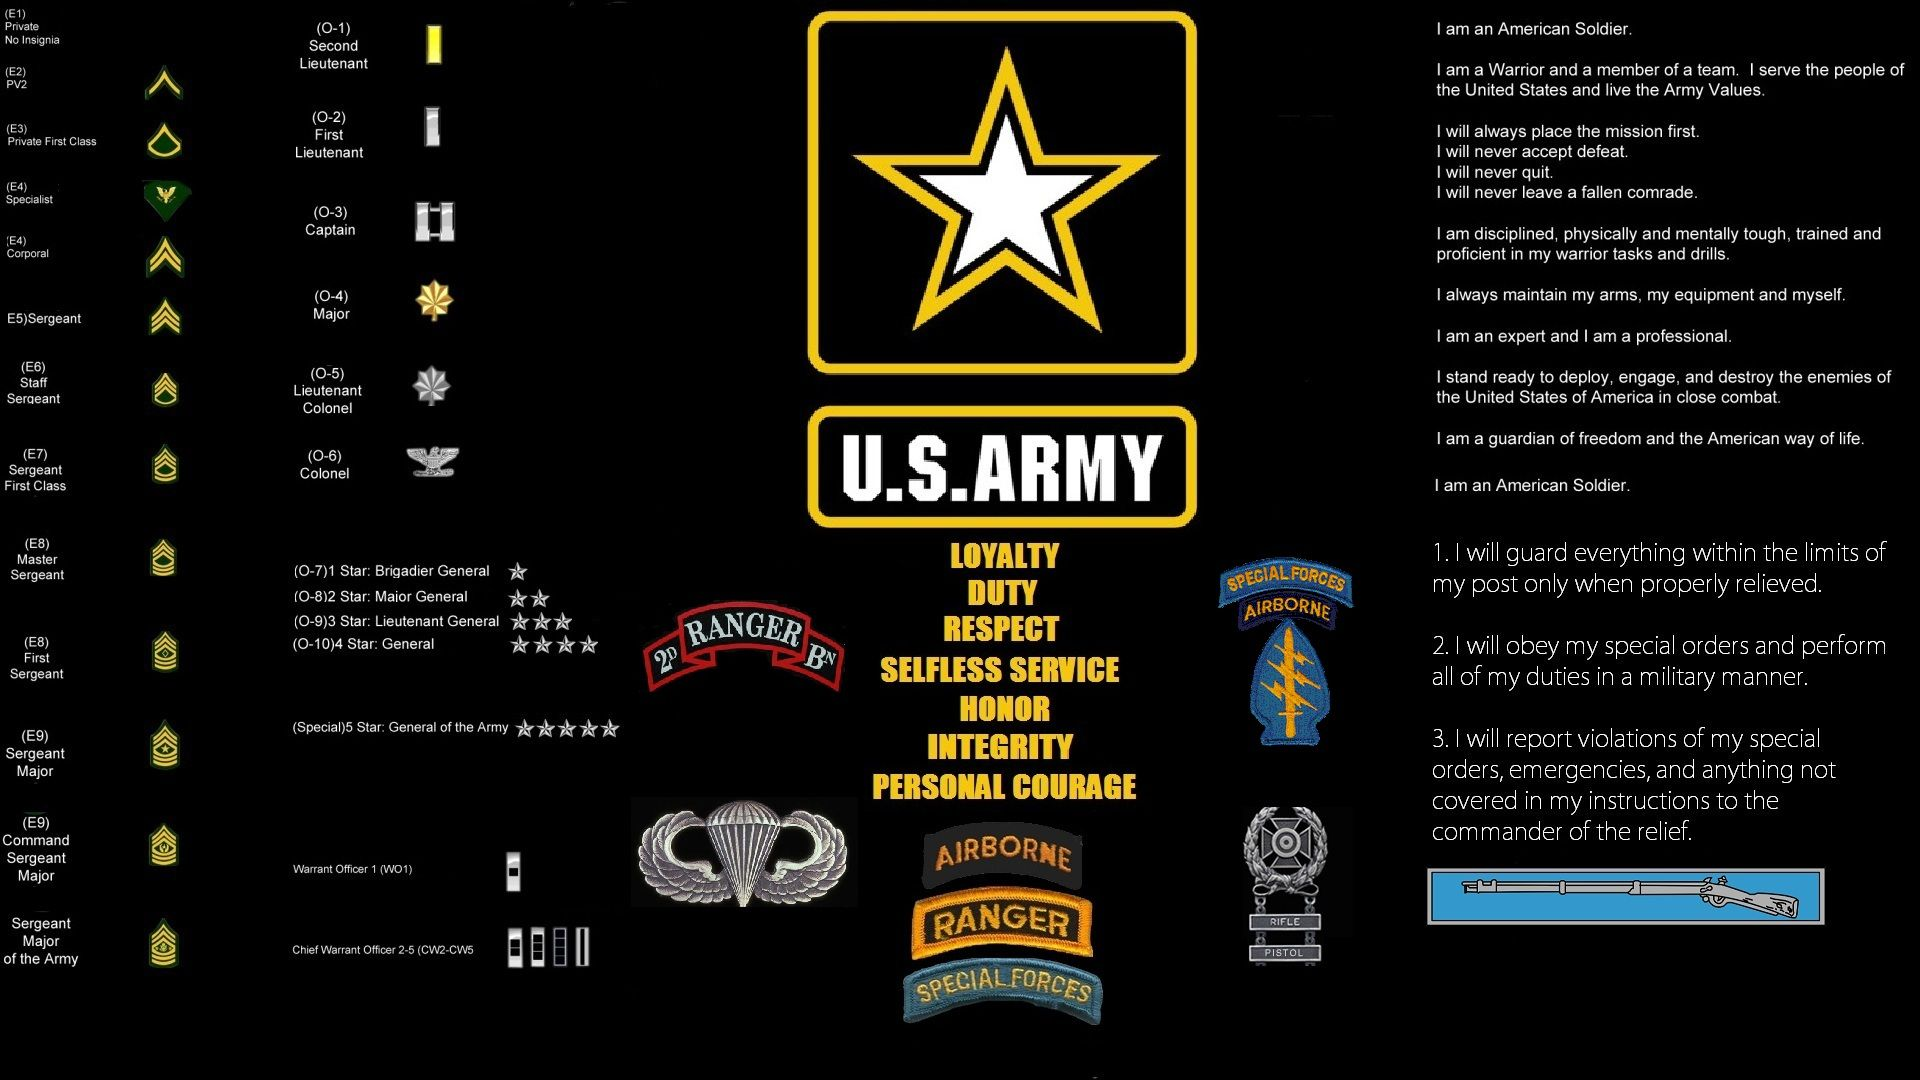 Us army wallpaper backgrounds wallpaper 6401136 us army logo us army wallpaper backgrounds wallpaper 6401136 us army logo wallpapers 37 wallpapers voltagebd Image collections